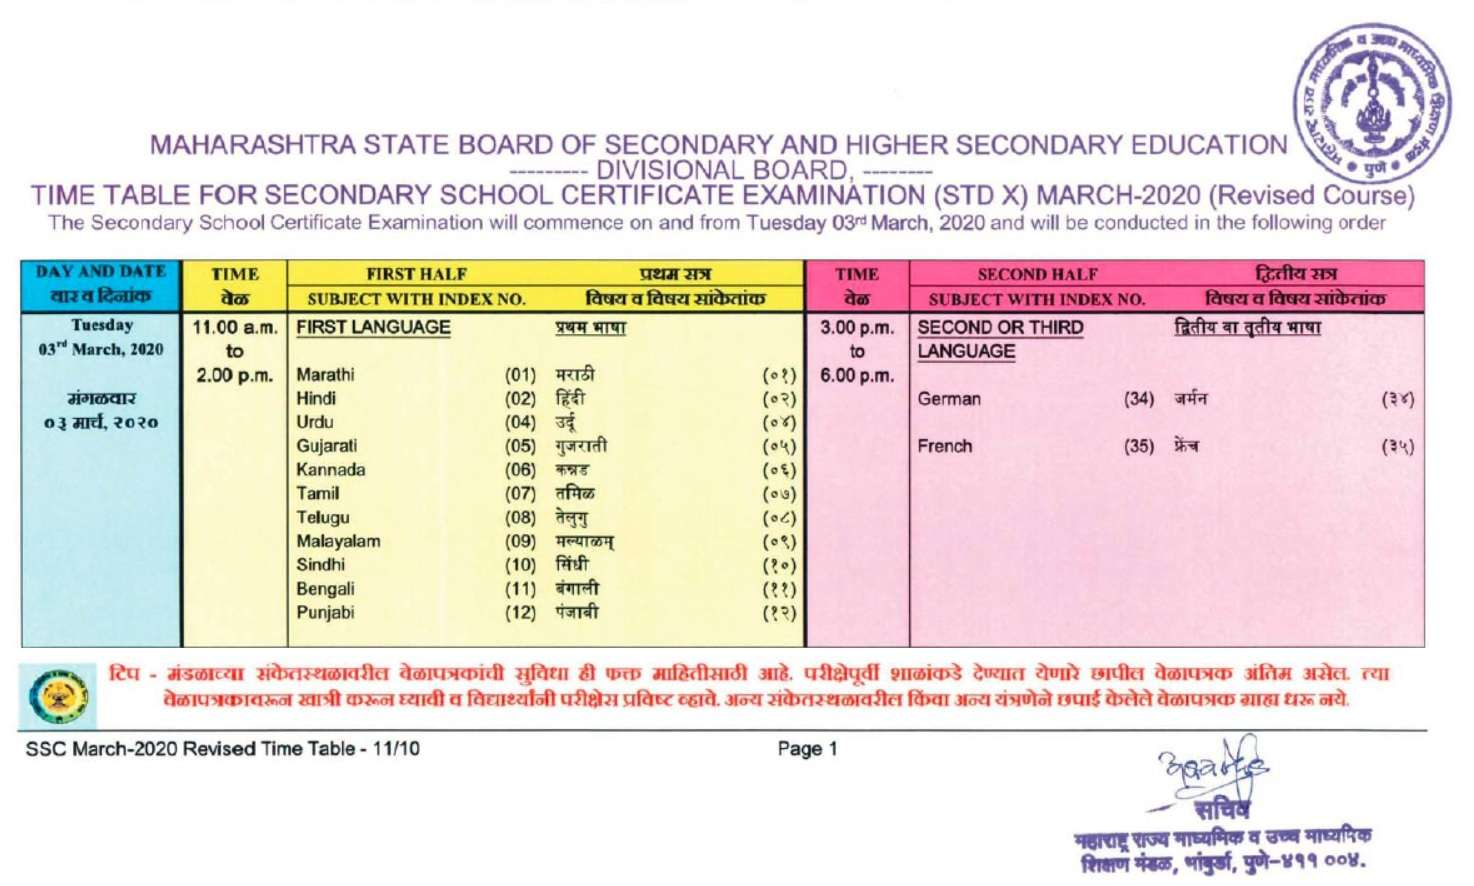 10th (SSC) Time Table for Maharashtra Board Exam 2020